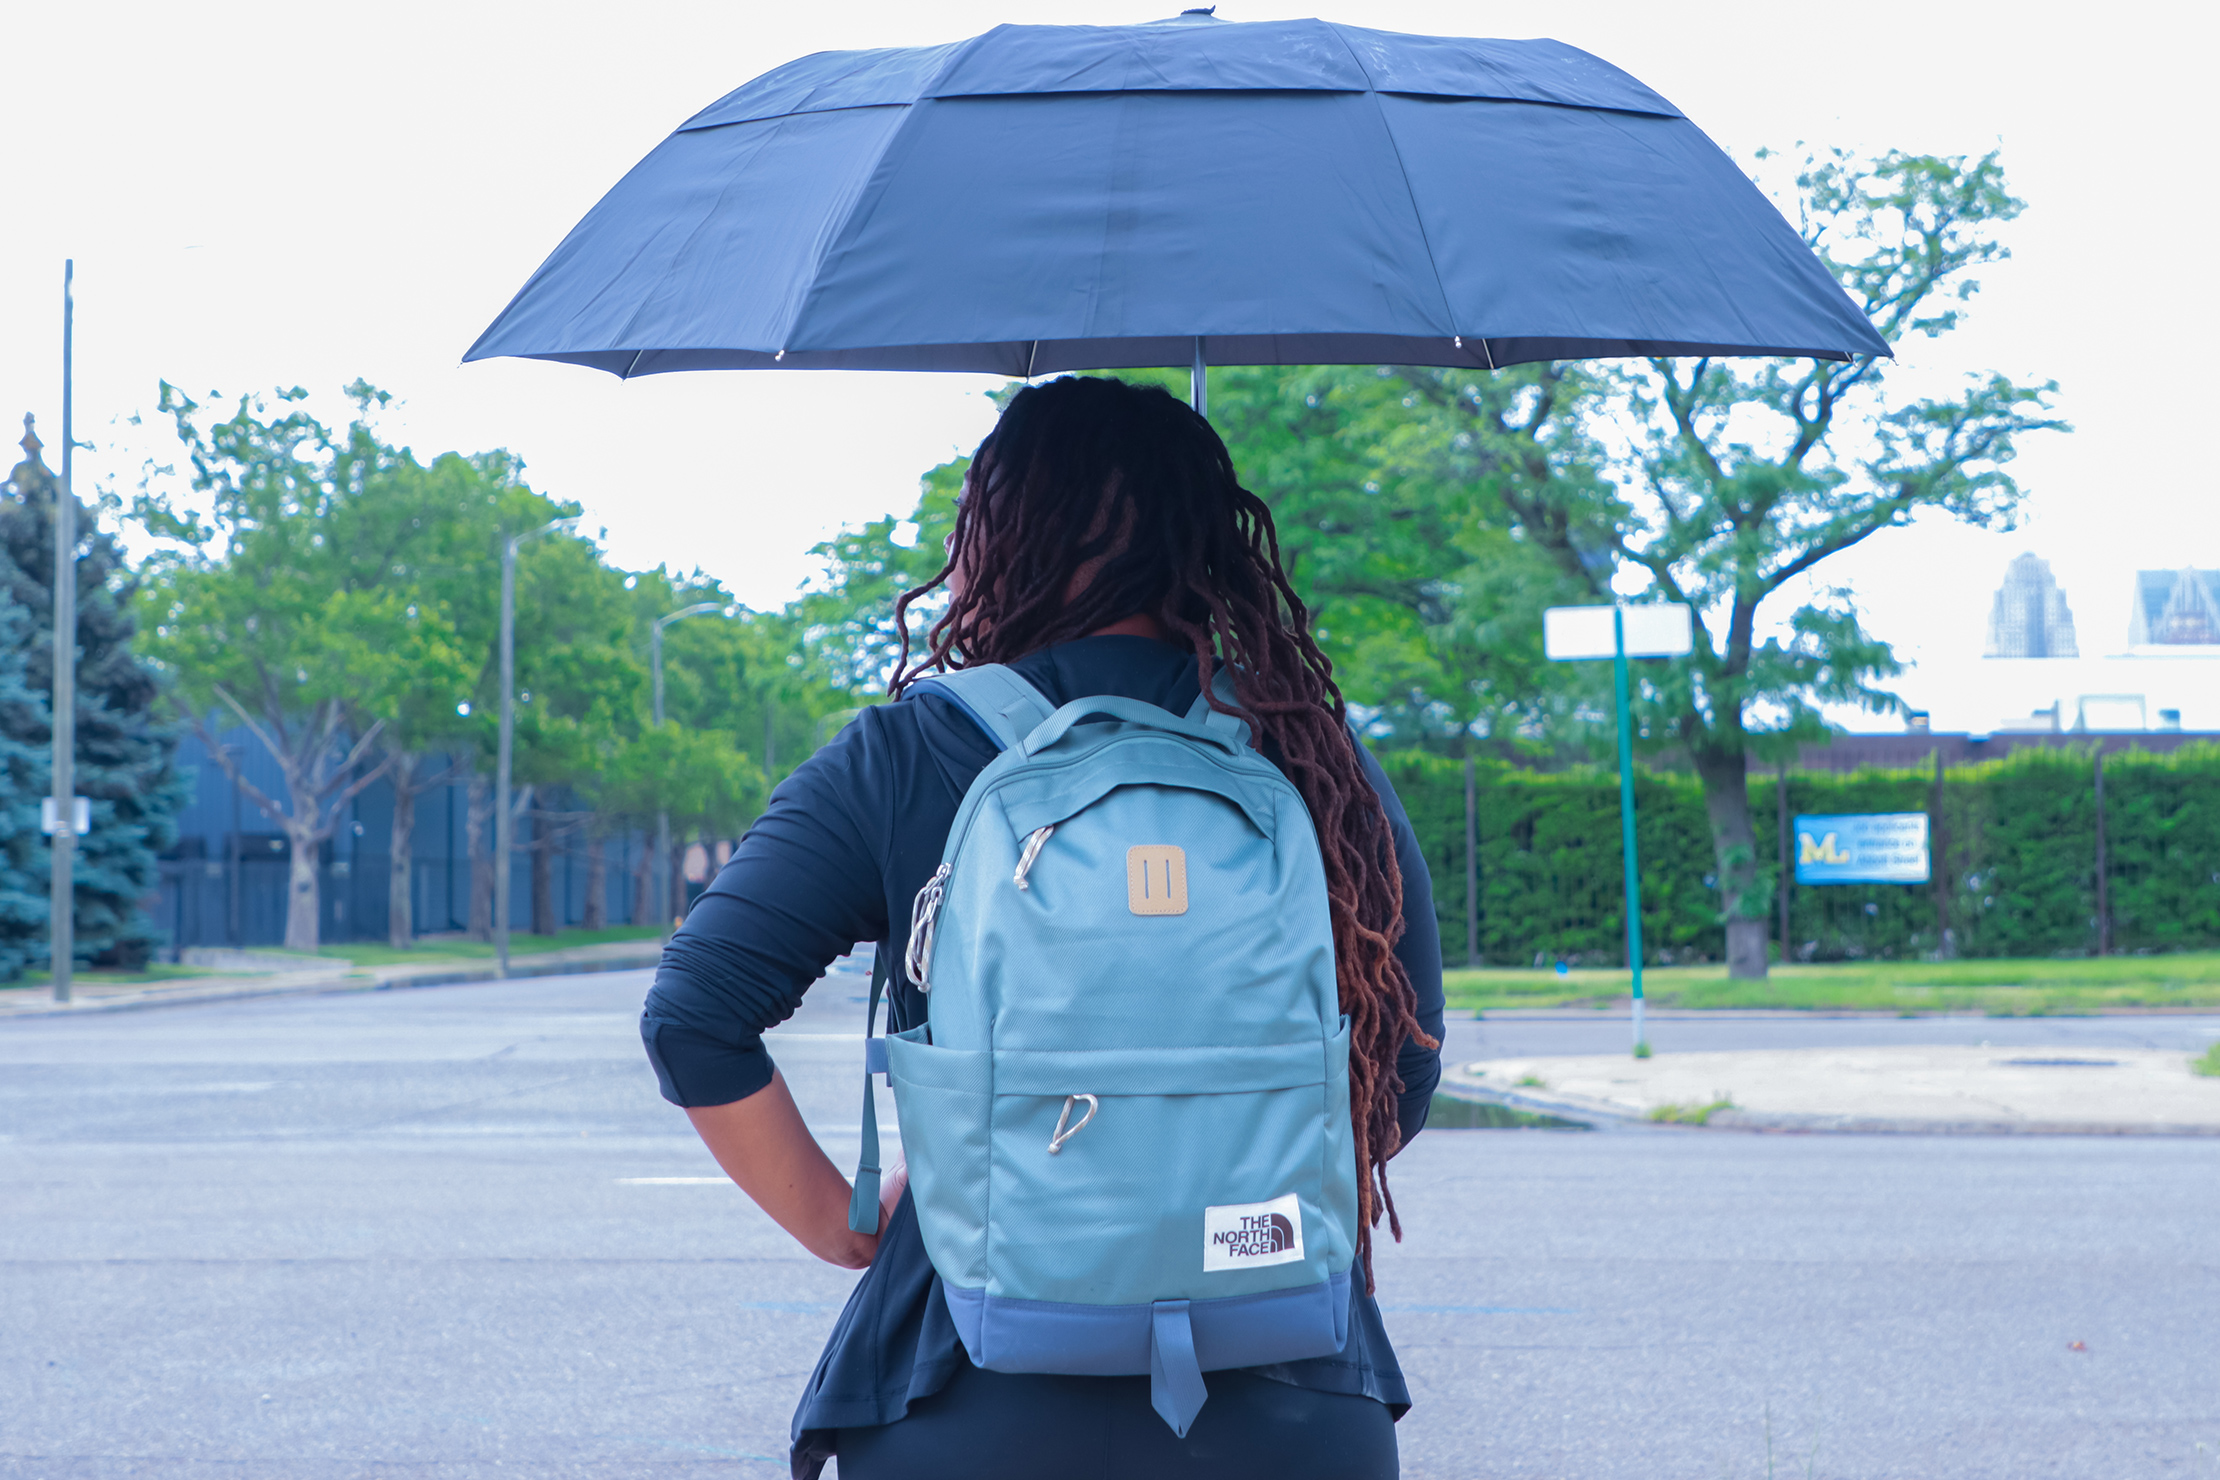 The North Face Daypack with umbrella